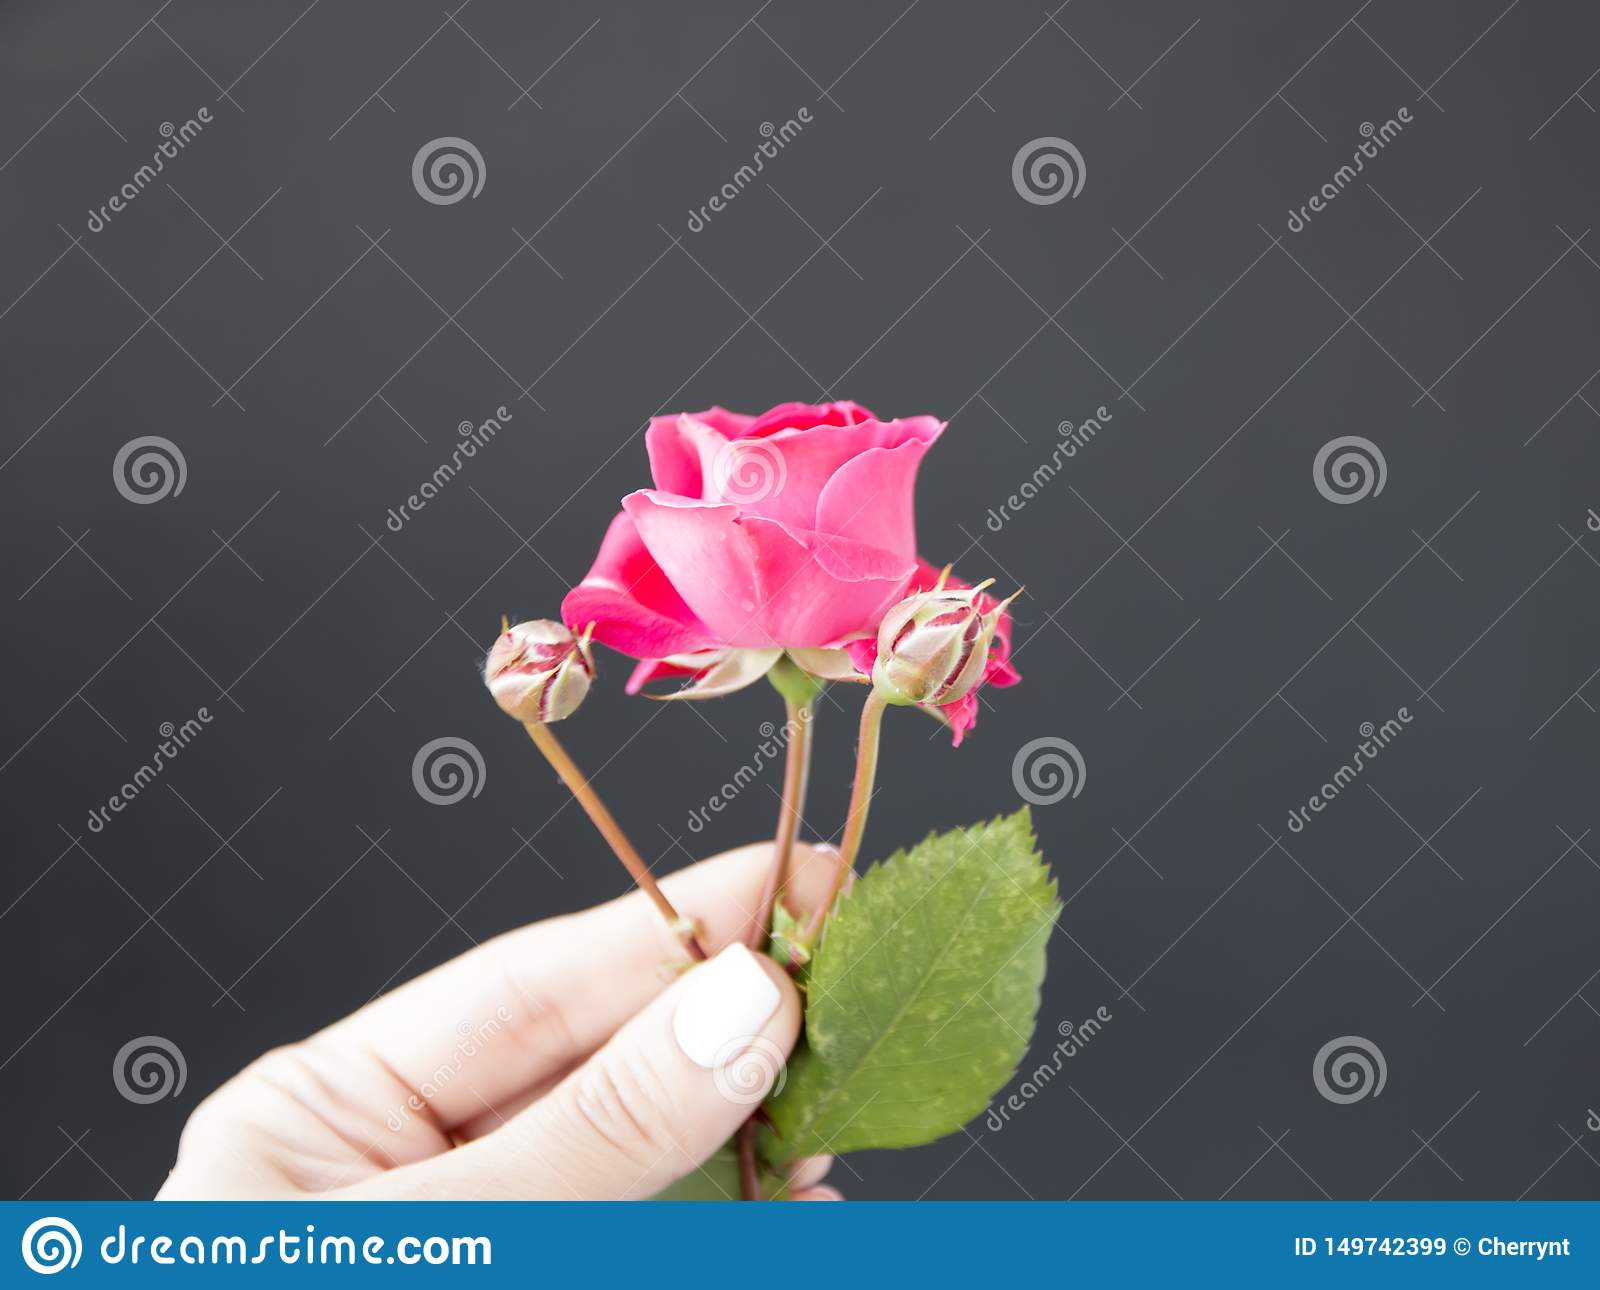 Pink rose in hand against, a black background